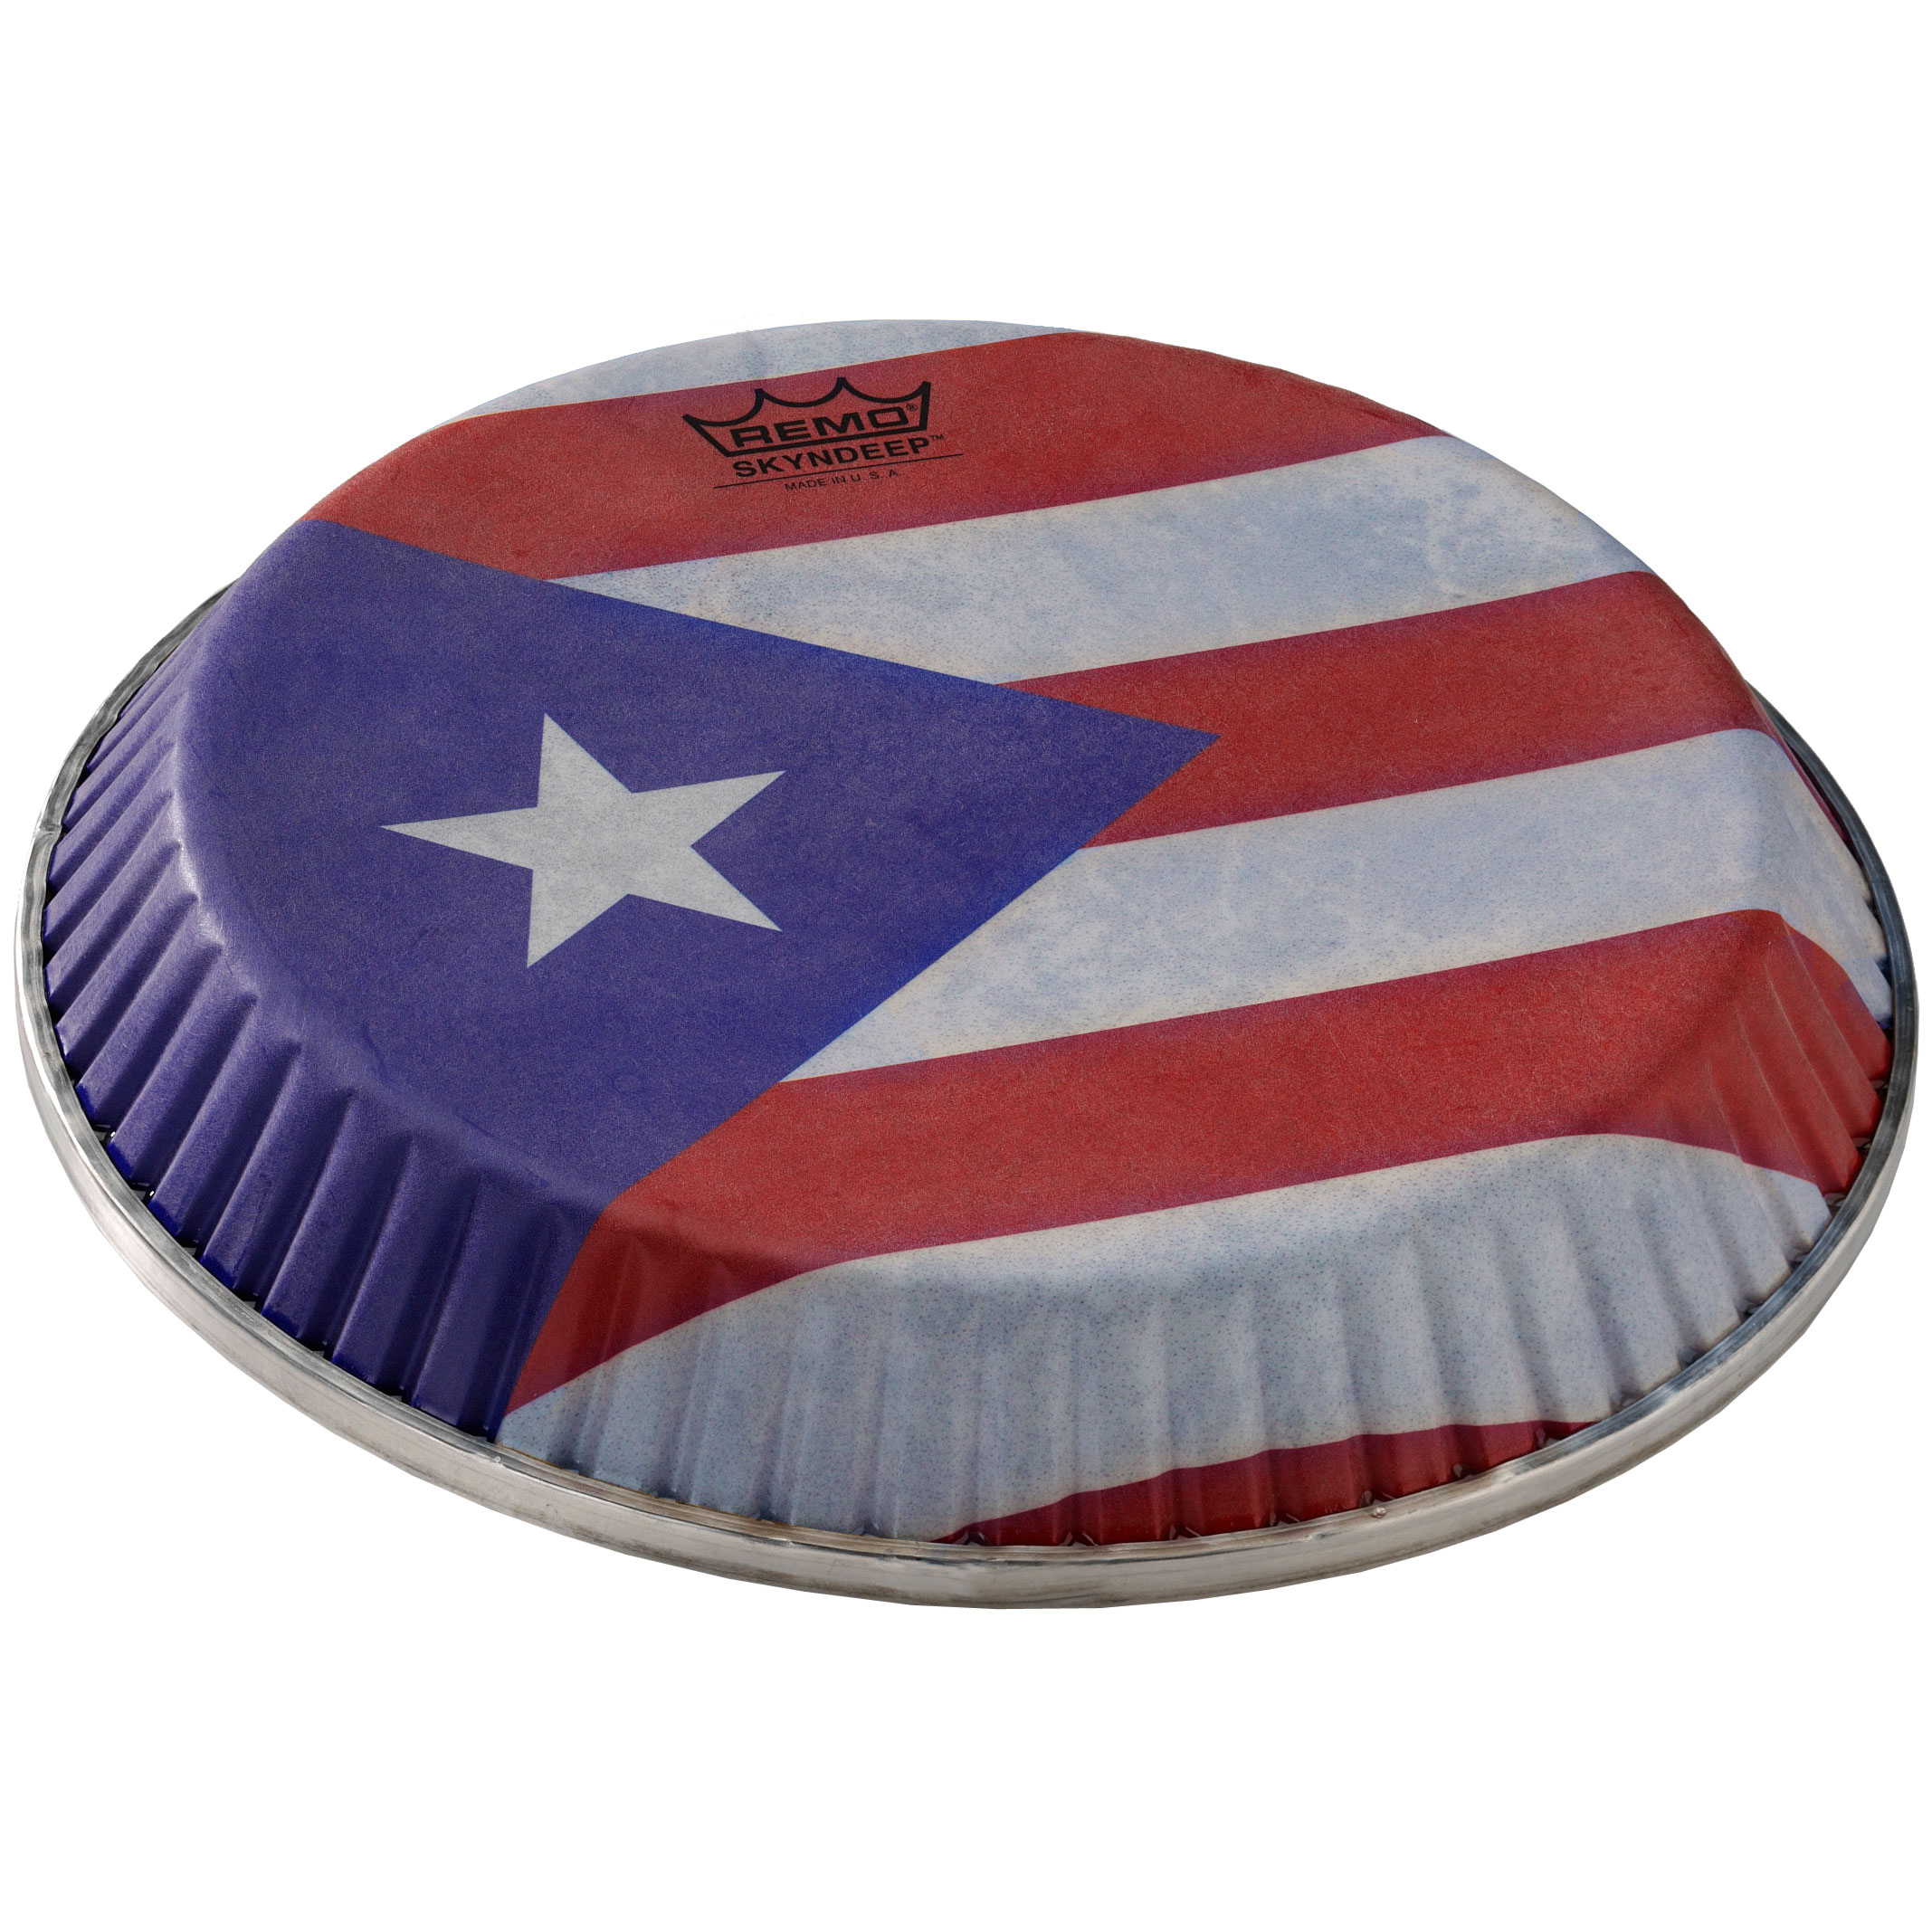 """Remo 11.75"""" Symmetry Skyndeep Conga Drum Head (D4 Collar) with Puerto Rican Flag Graphic"""